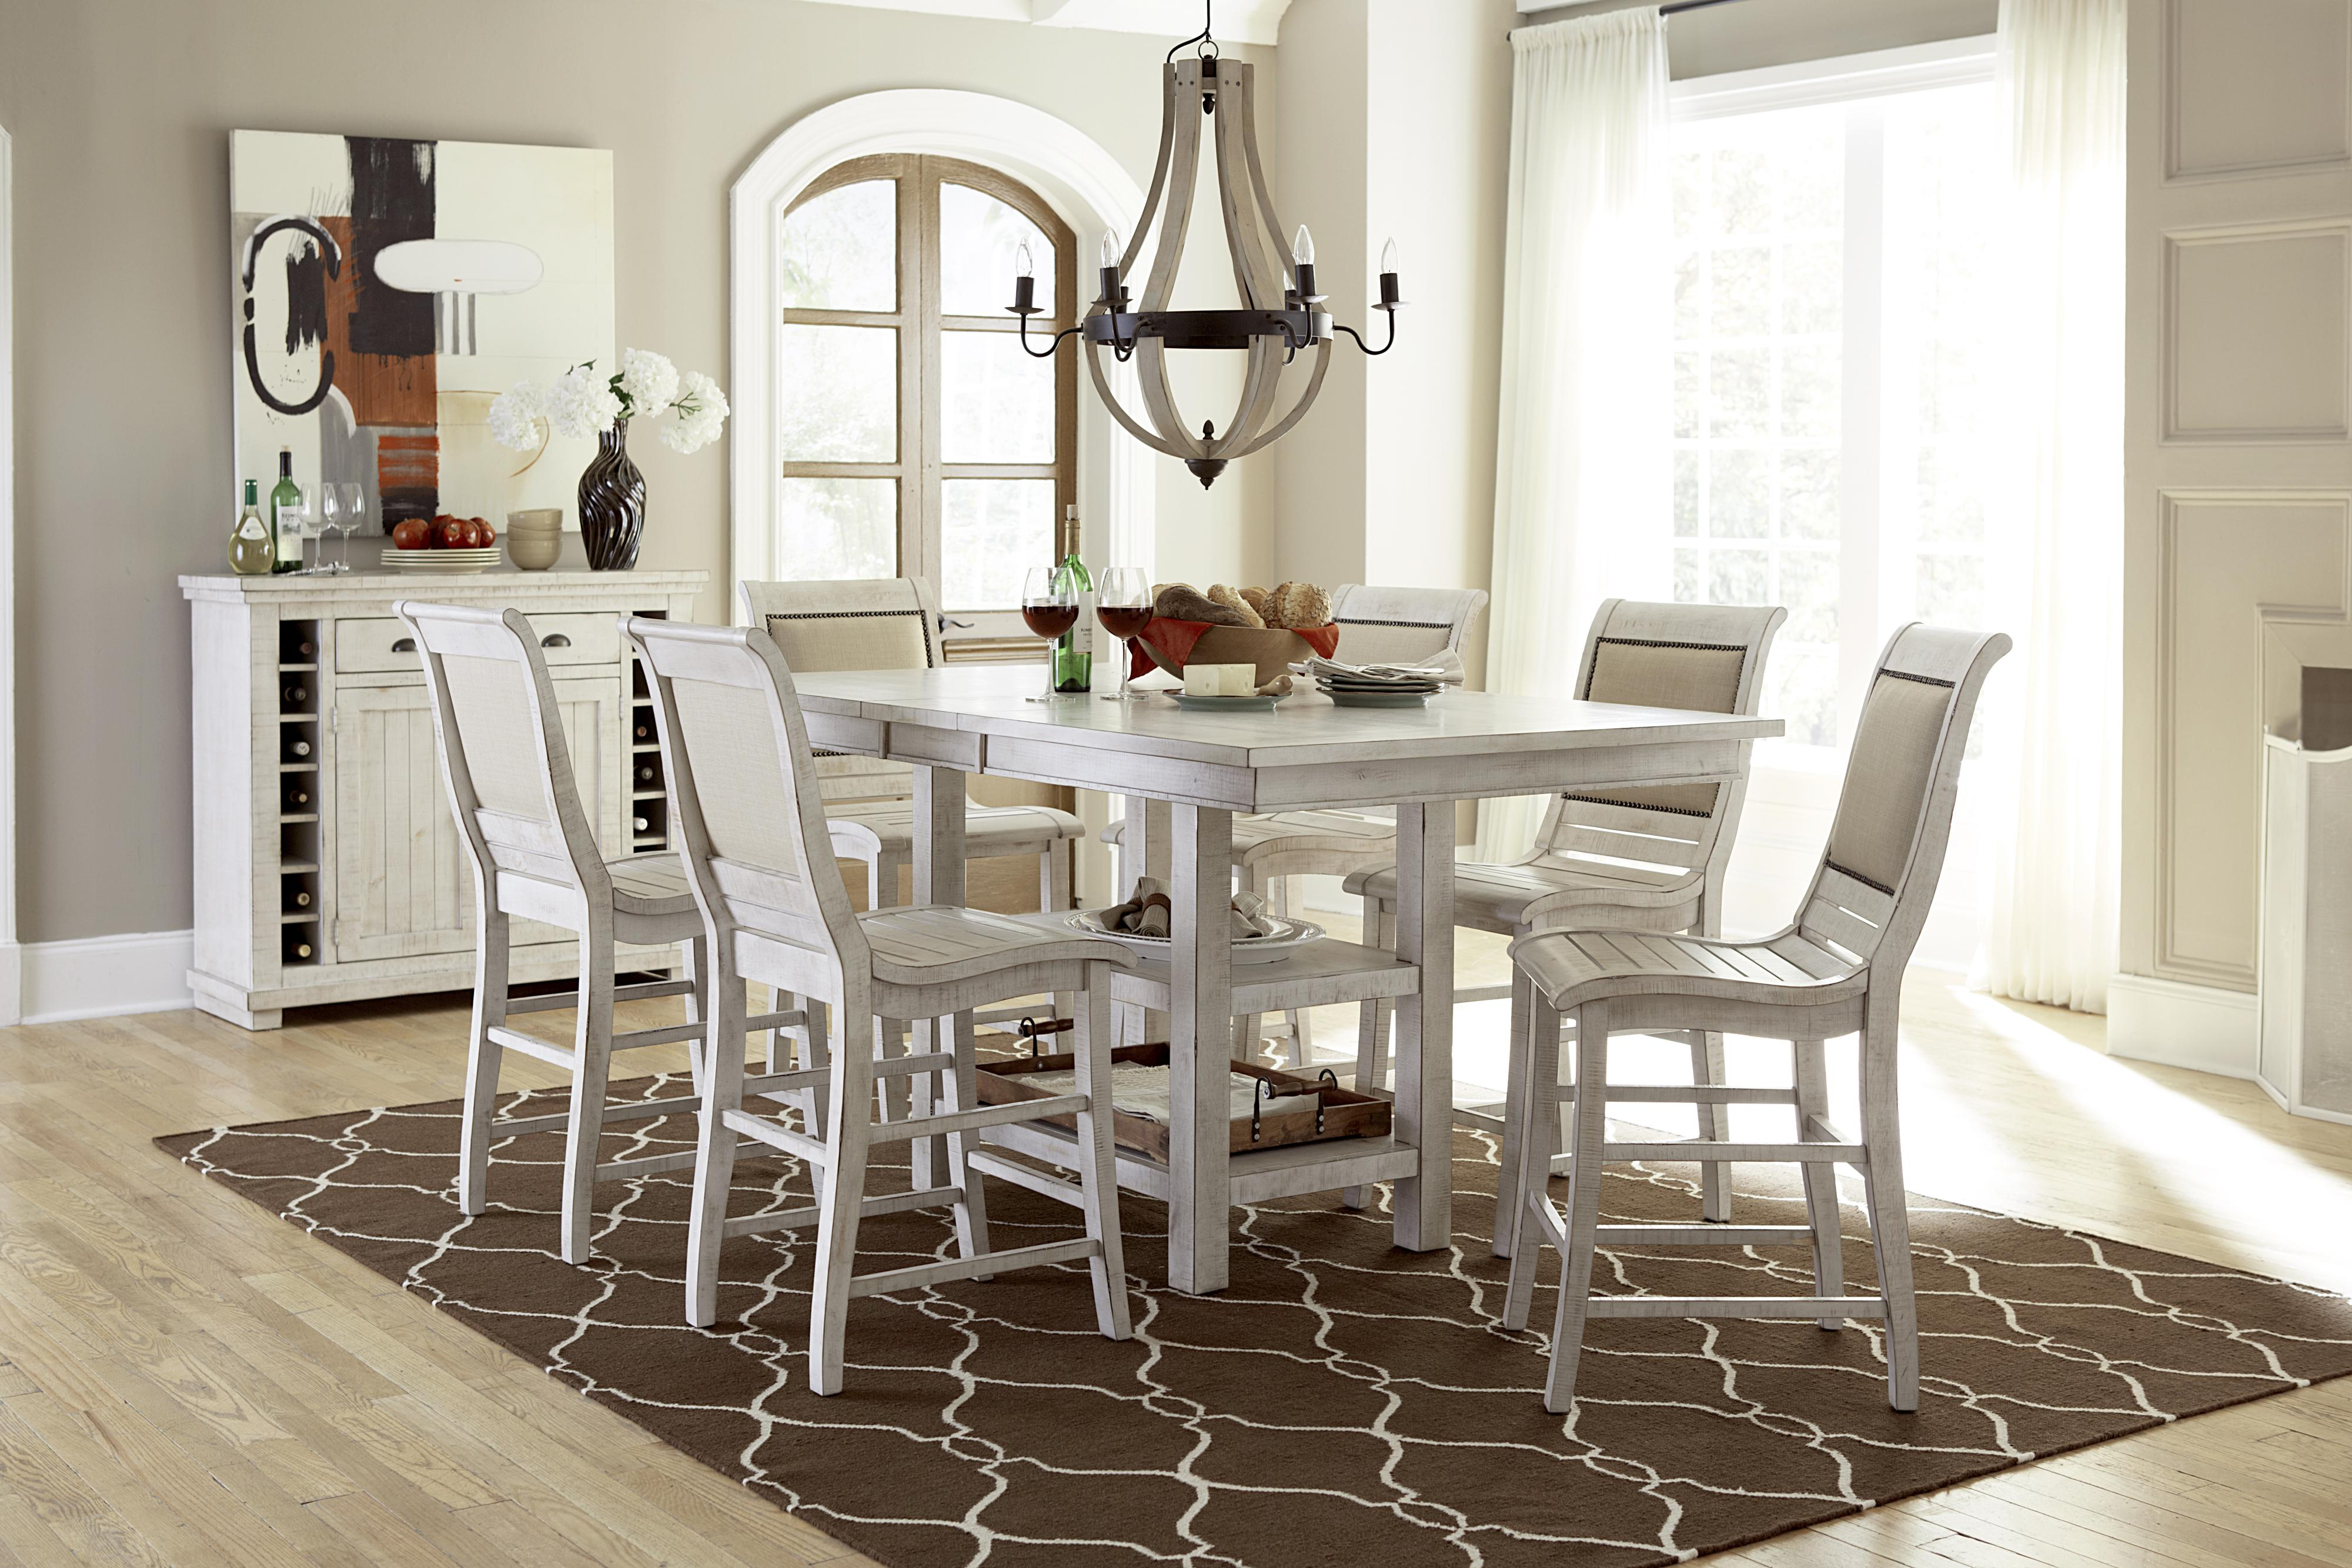 willow dining room | Progressive Furniture Willow Dining Casual Dining Room ...